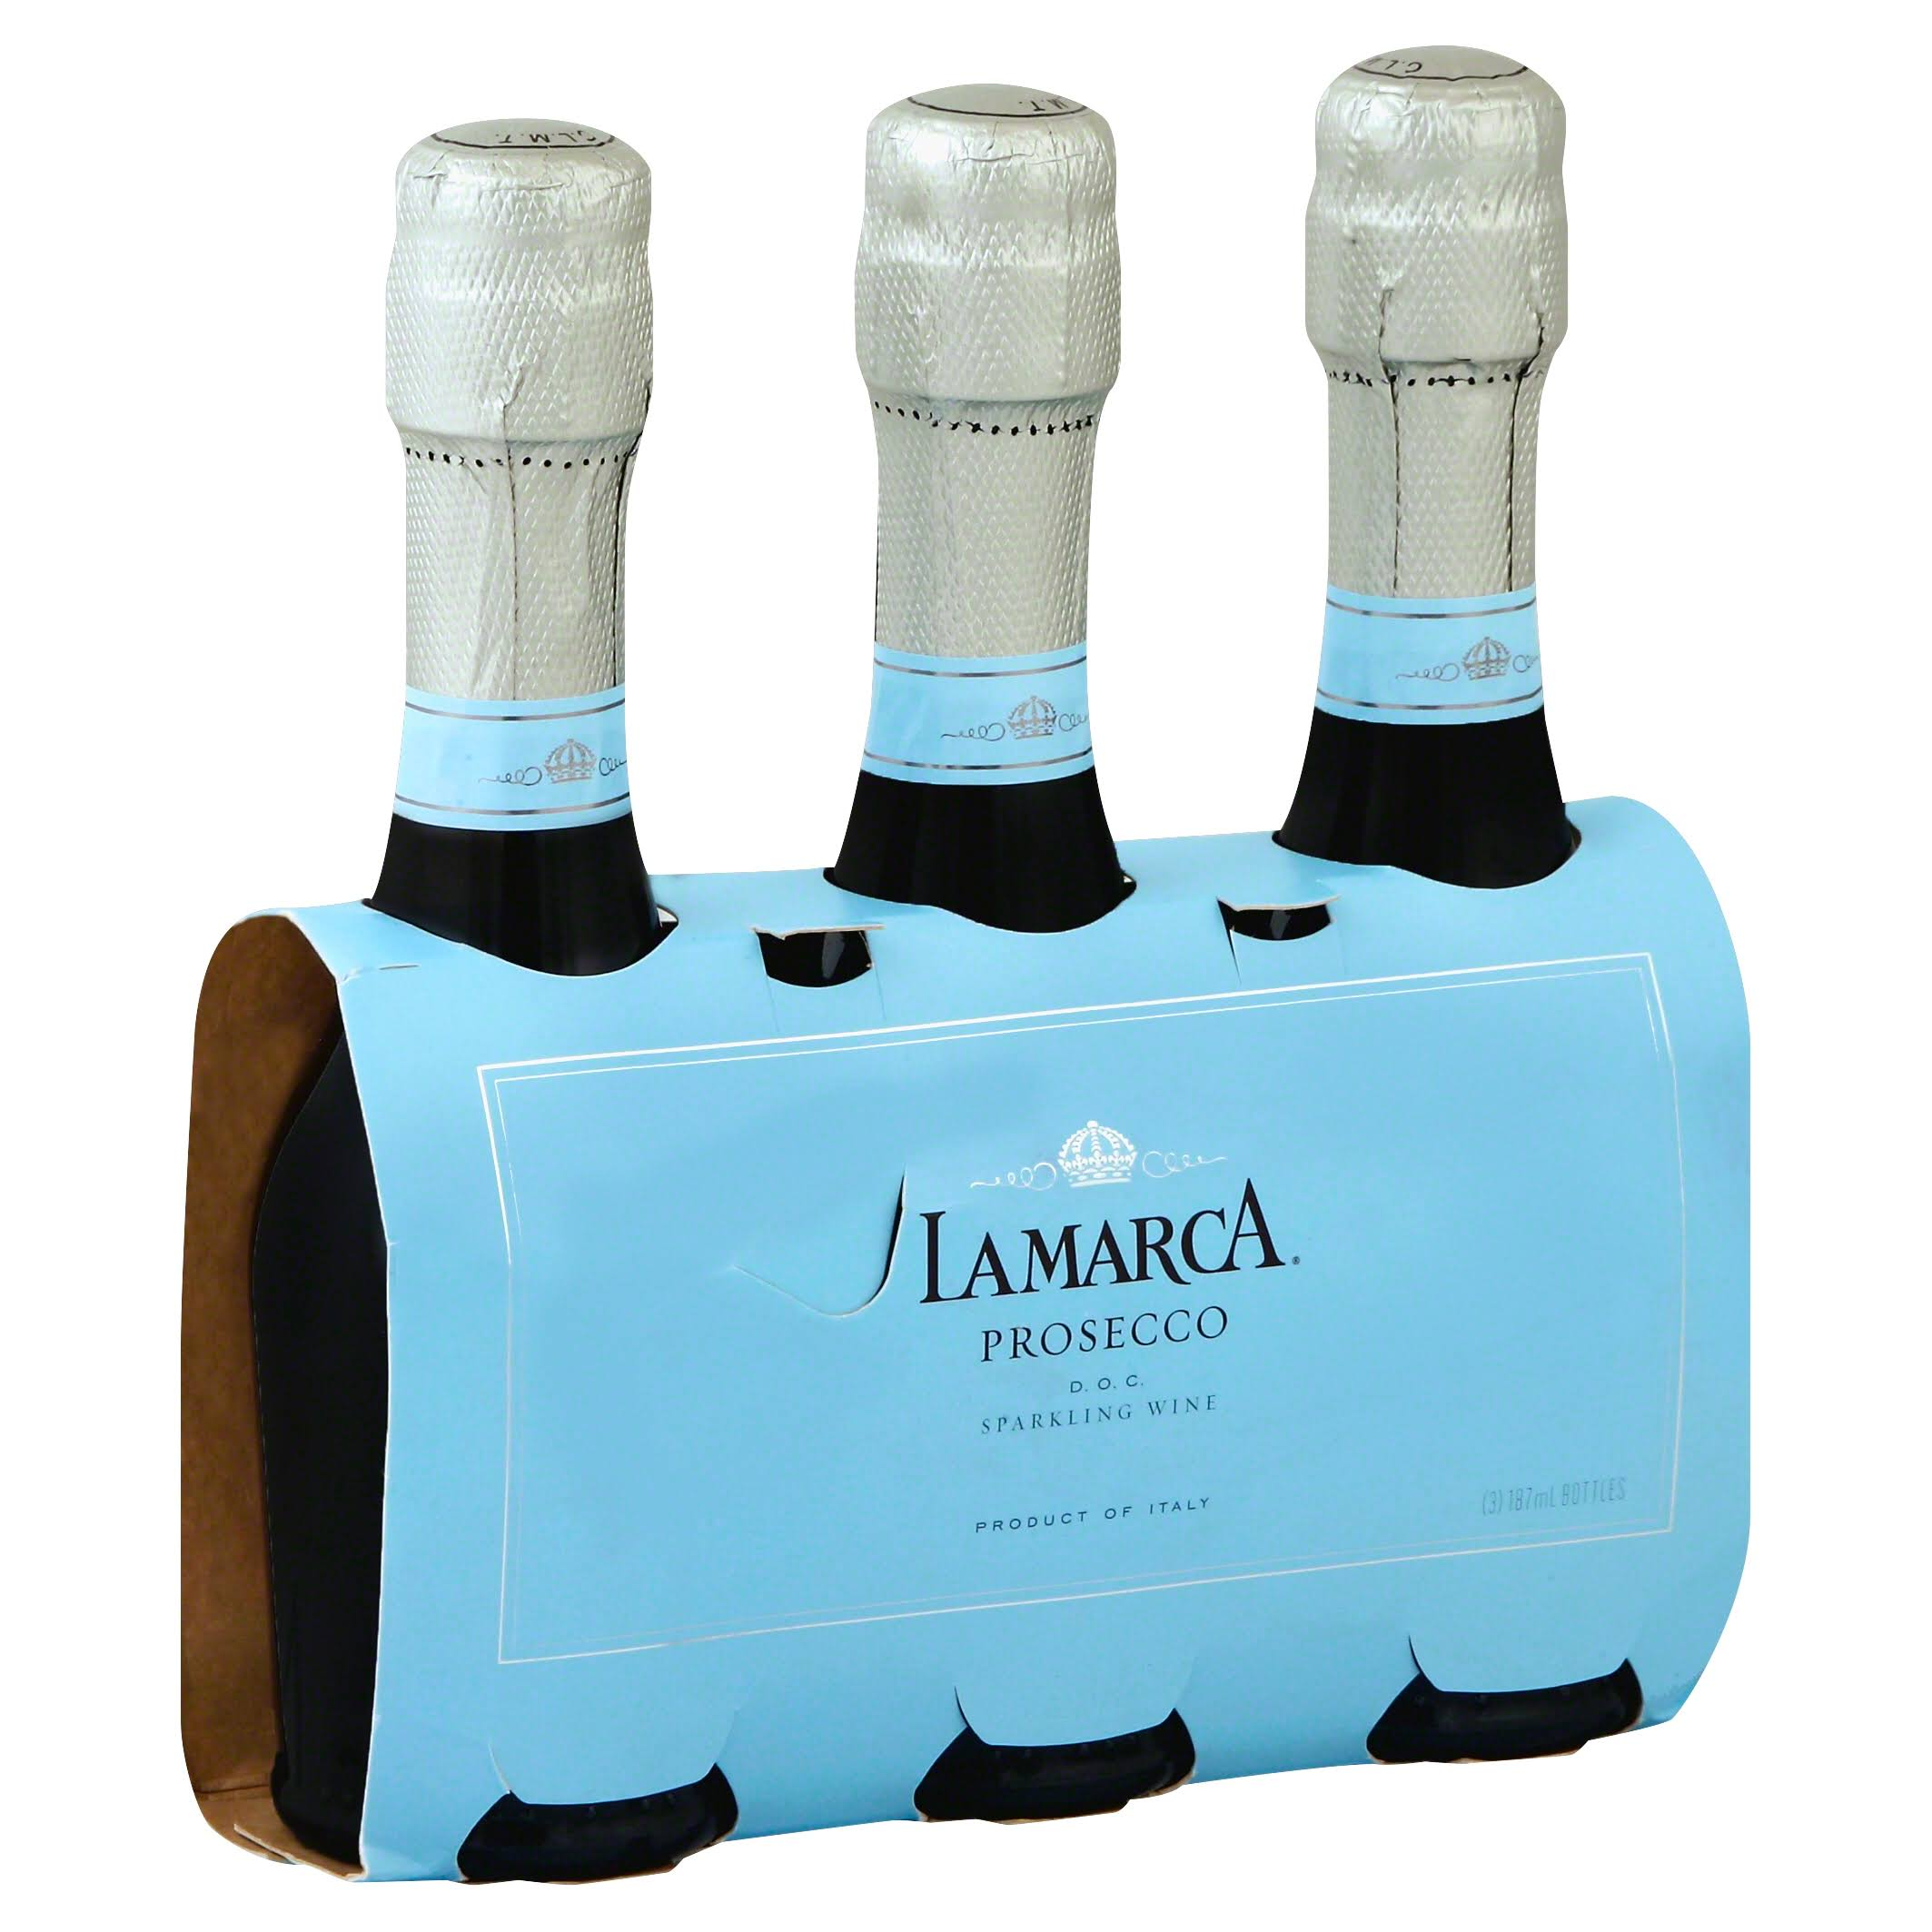 La Marca Prosecco, Sparkling Wine - 3 pack, 187 ml bottles